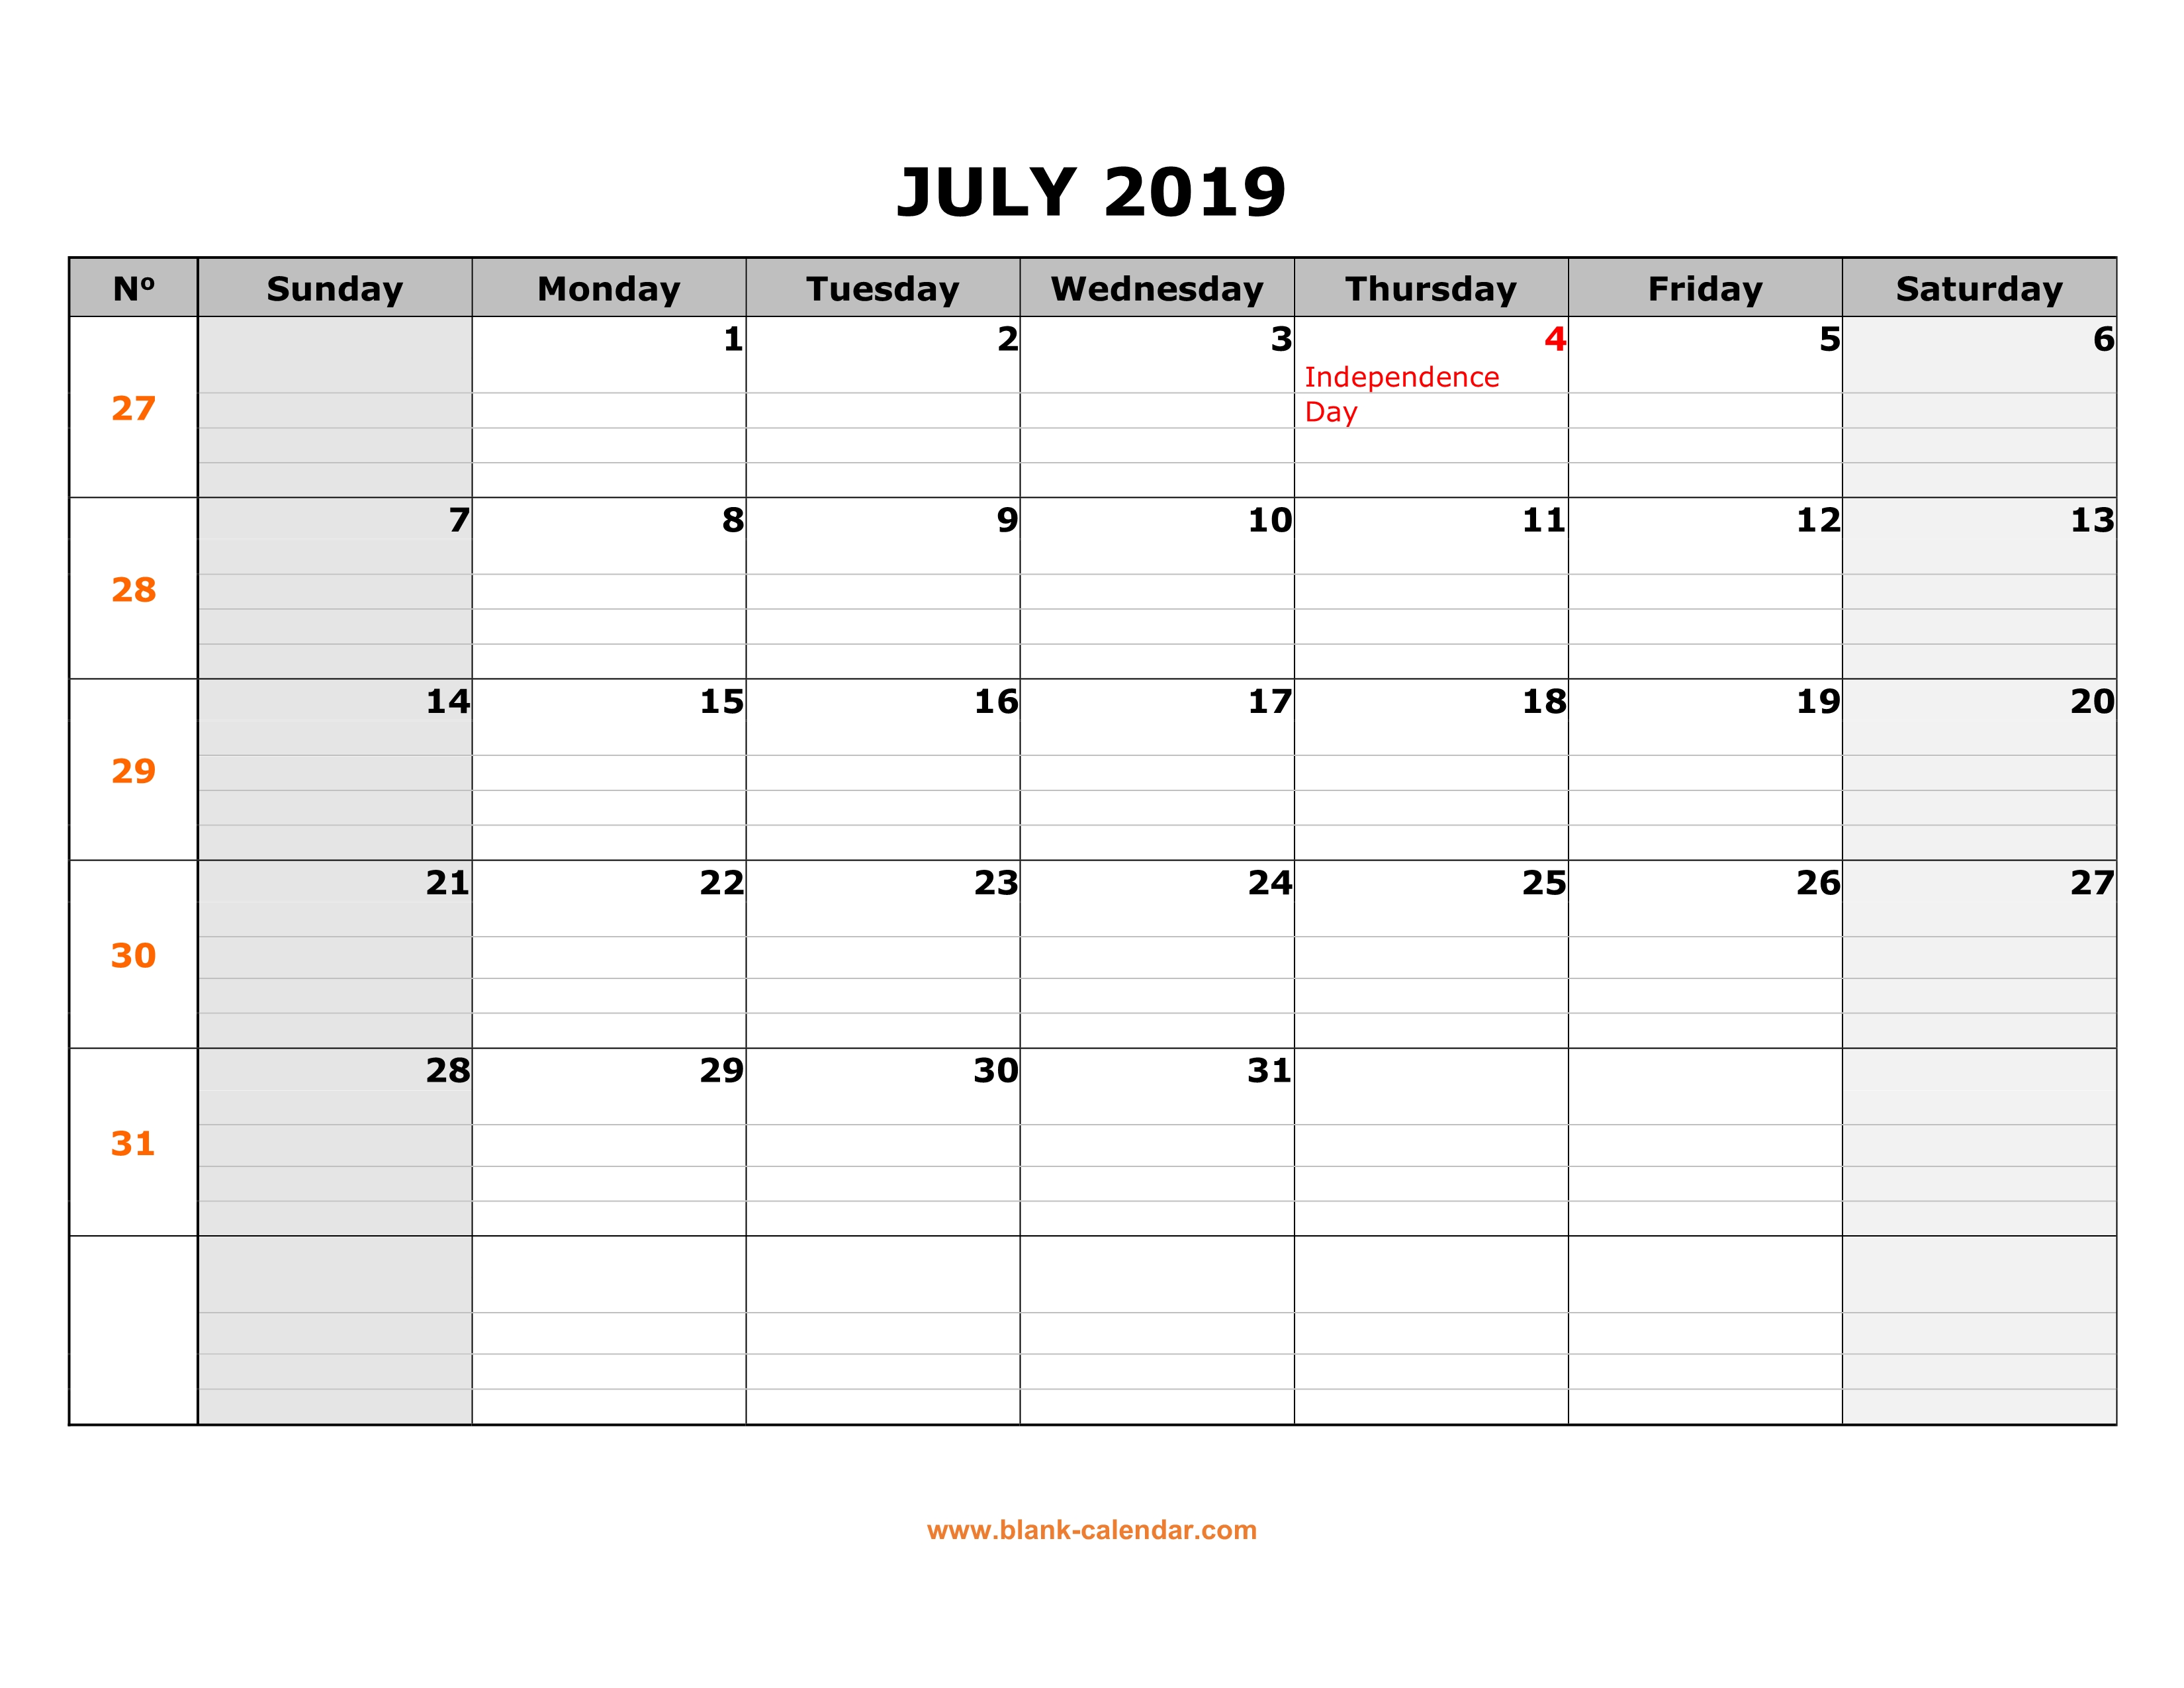 Calendar To Print July 2019.Free Download Printable July 2019 Calendar Large Box Grid Space